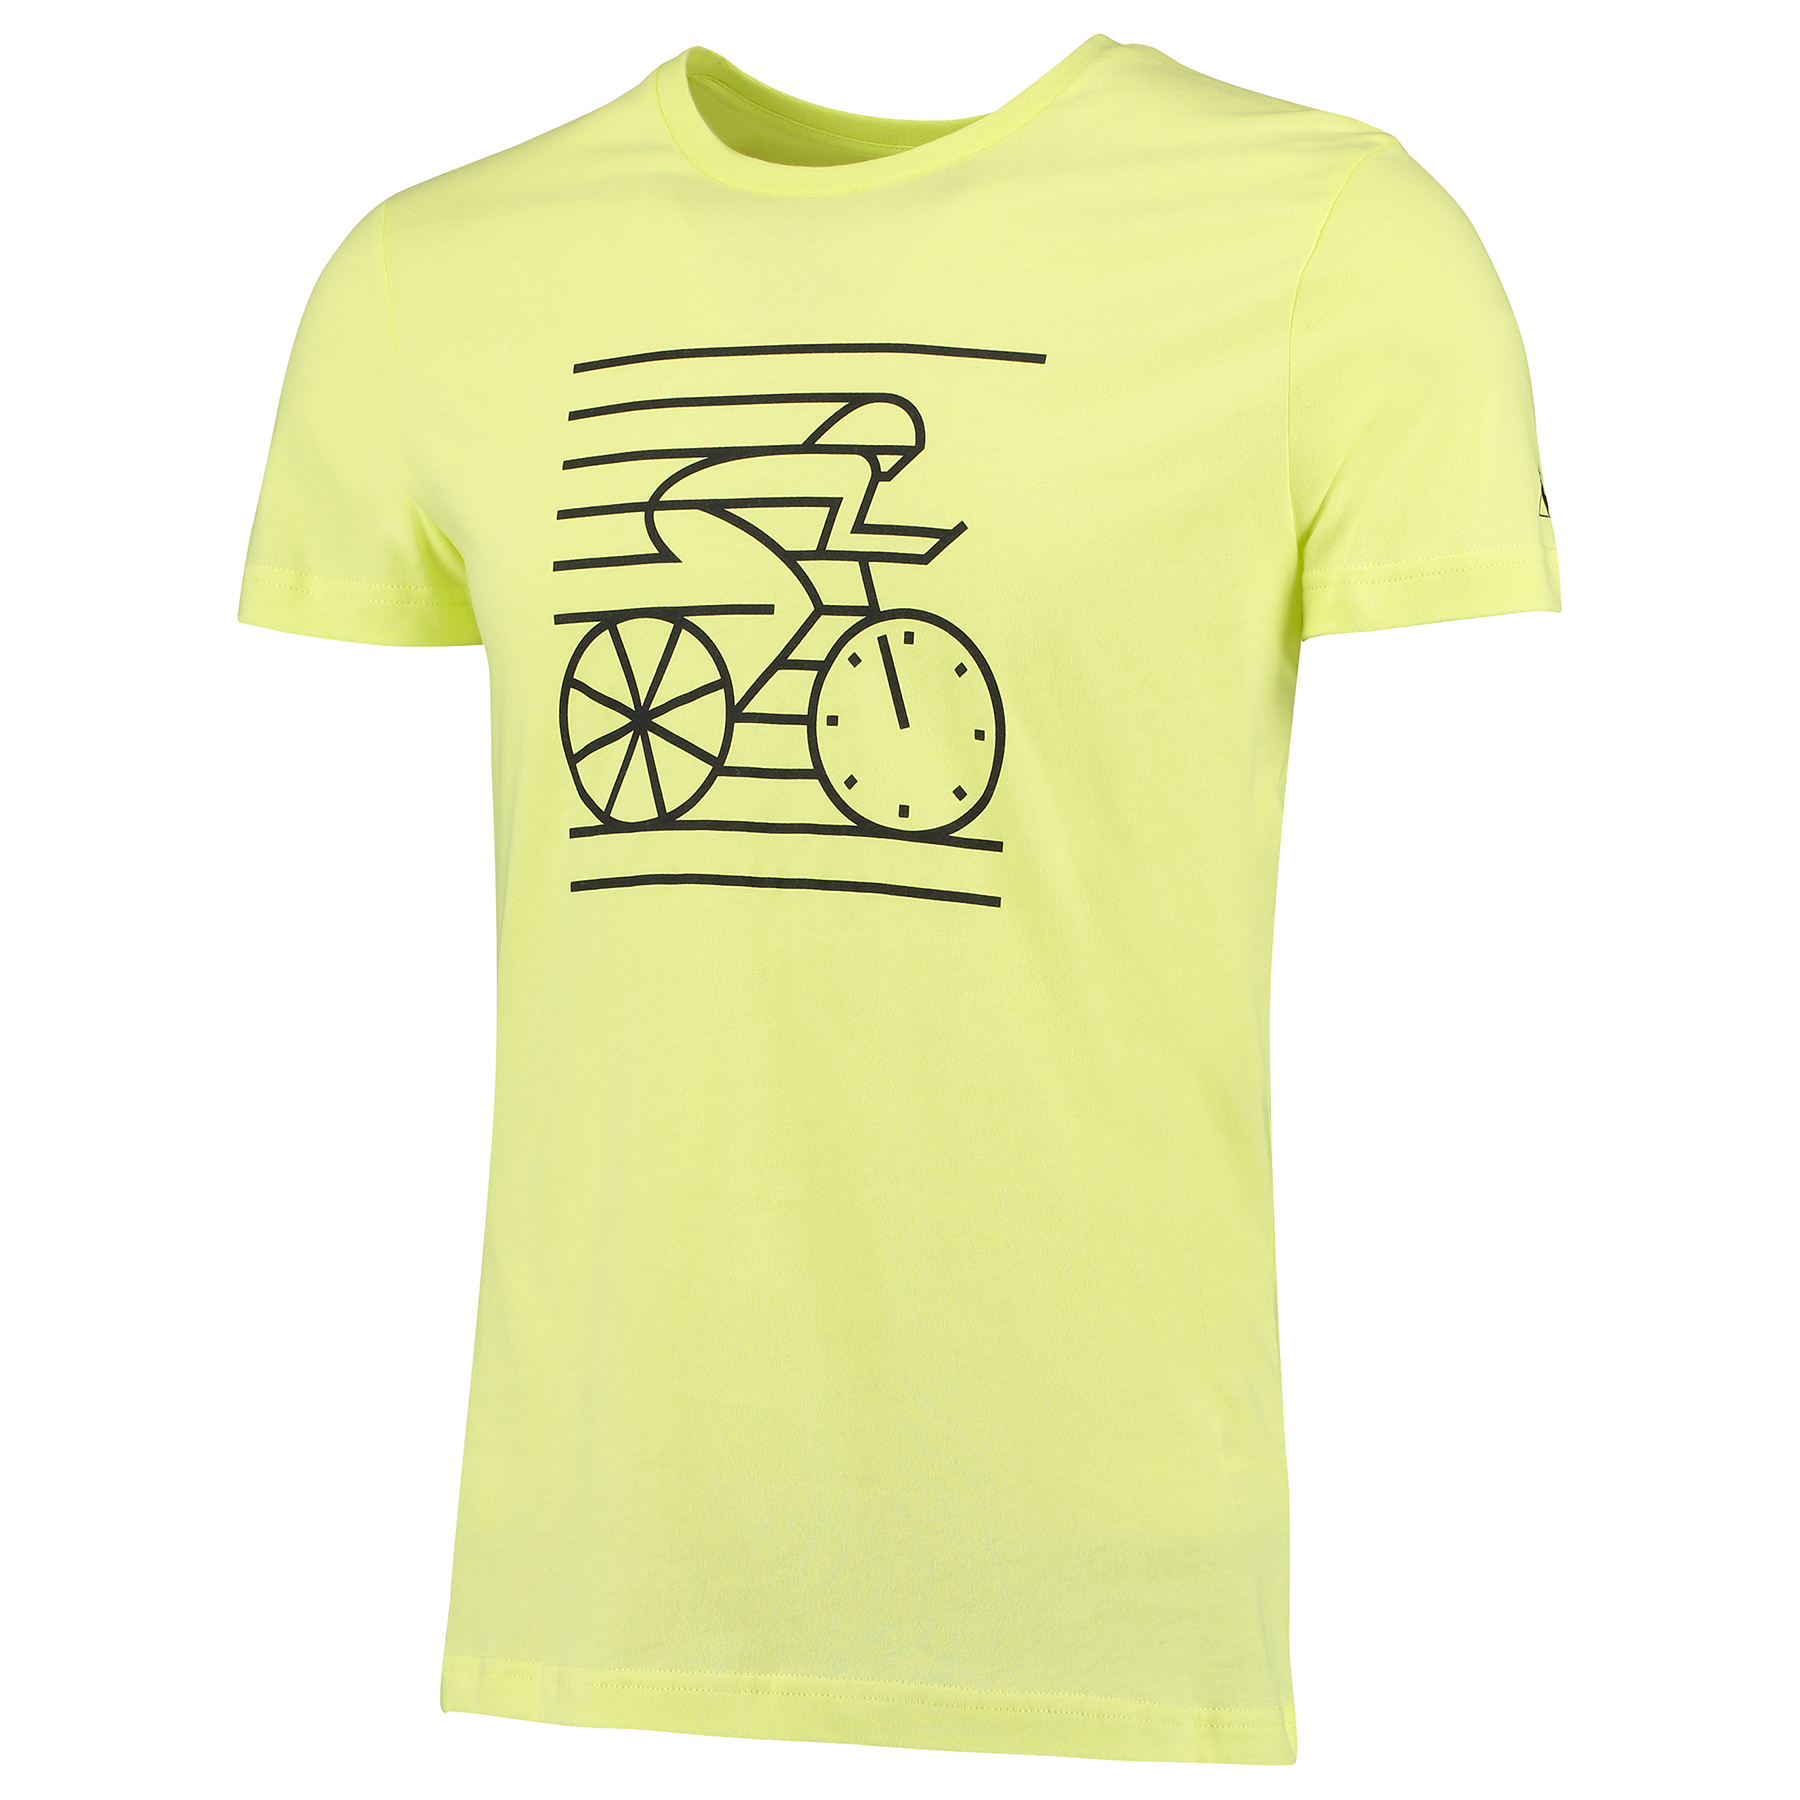 Le Coq Sportif Cyclist Stripes T-Shirt - Sunny Lime